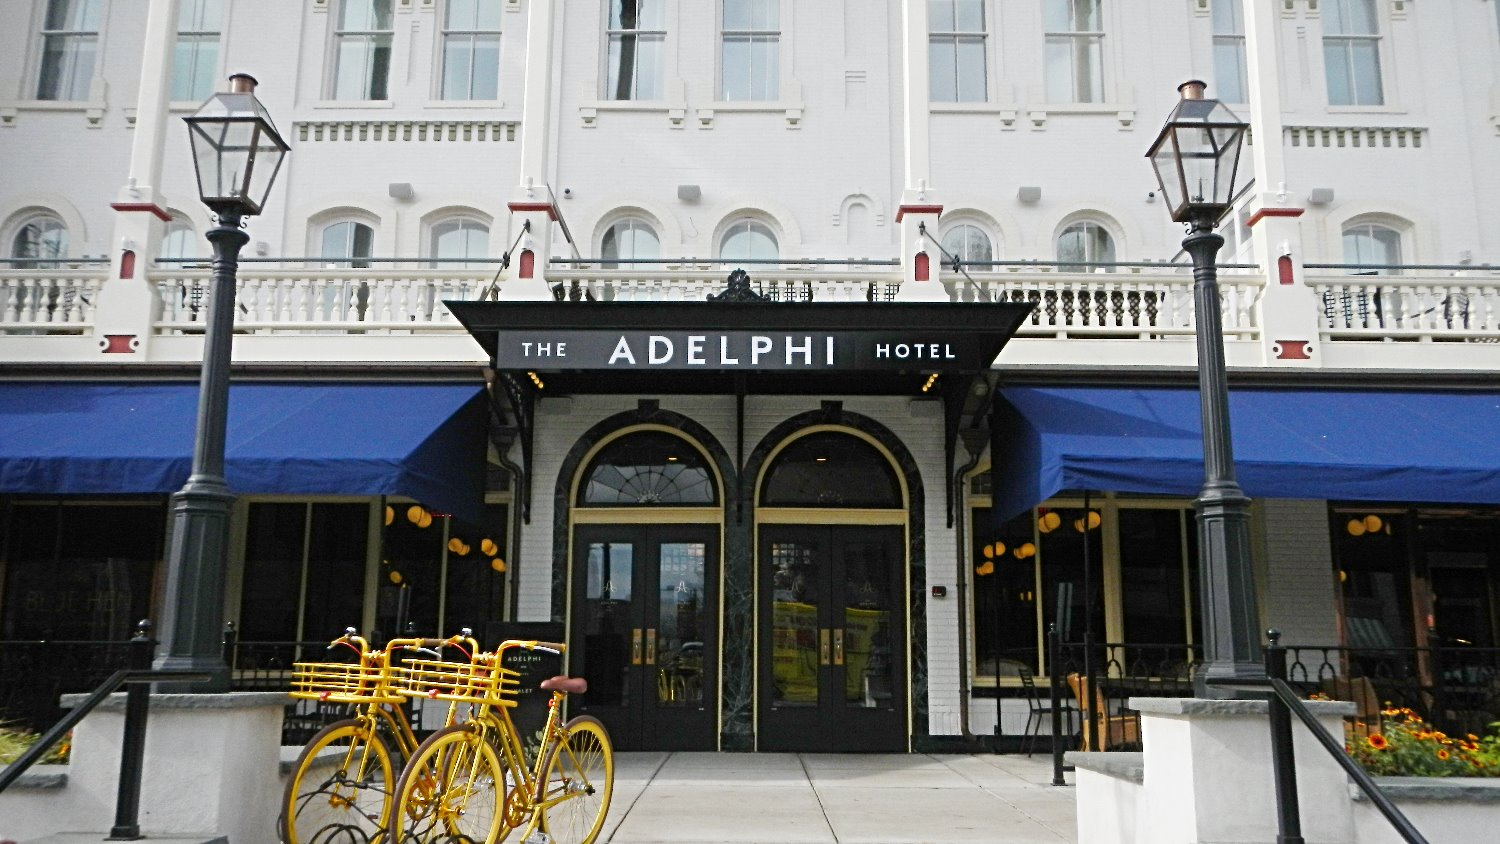 The grand entrance to The Adelphi Hotel